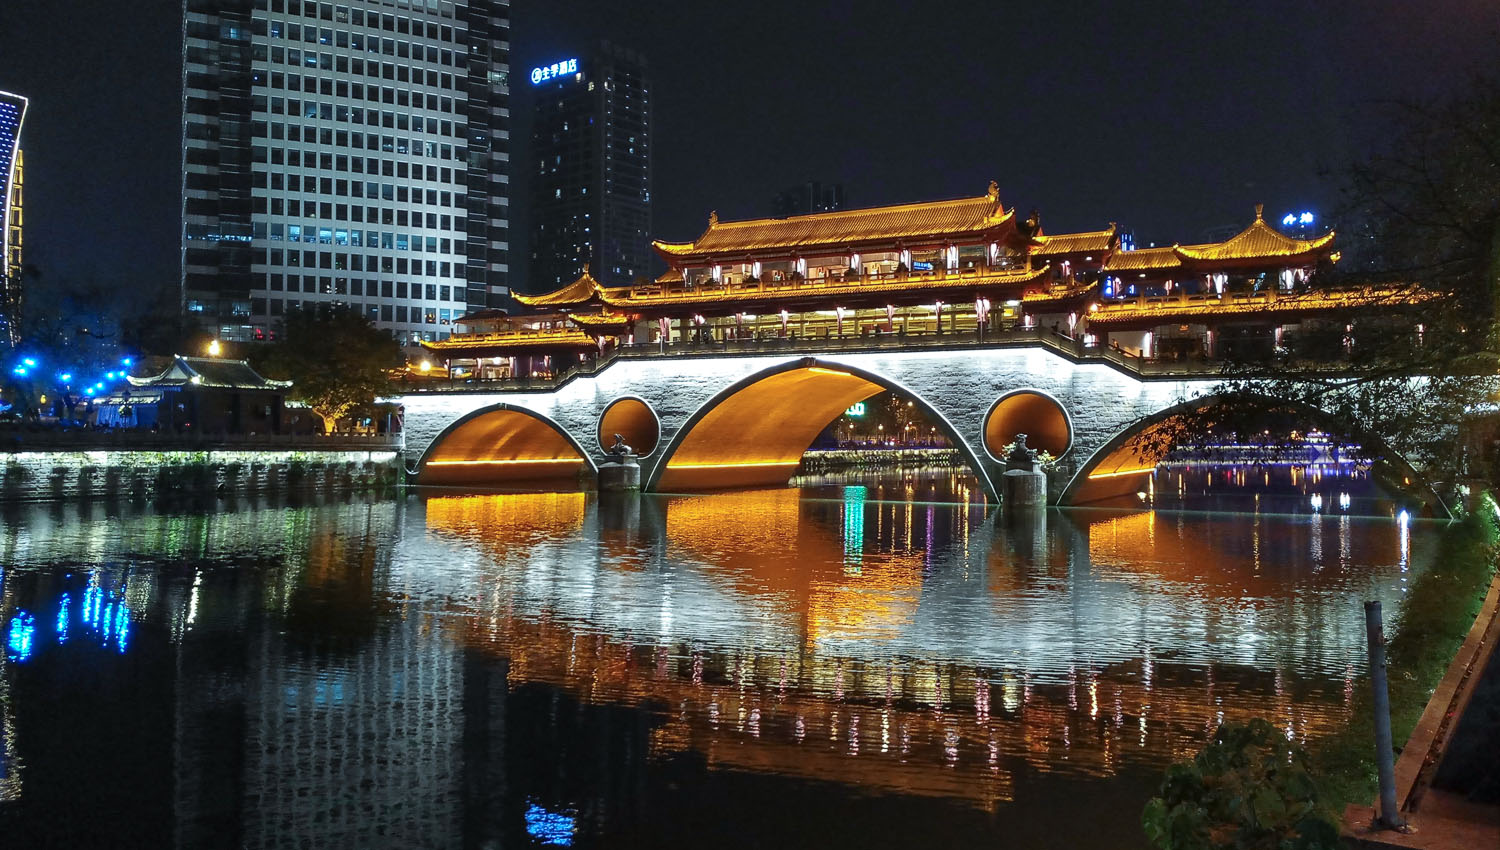 The historic Anshun covered bridge in Chengdu. Image:     bljbkk